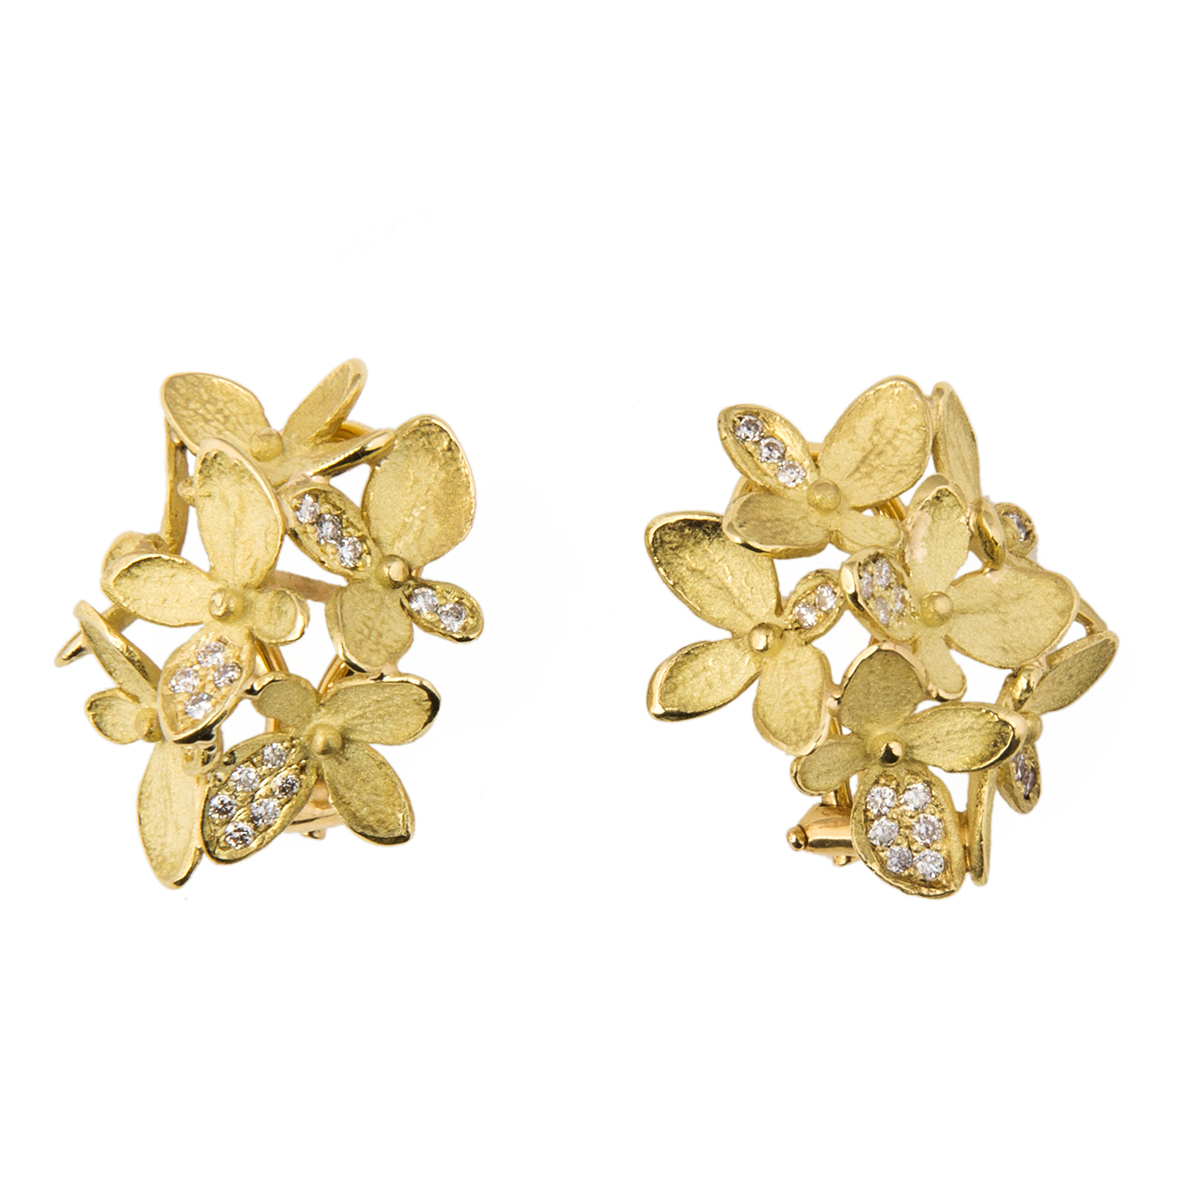 for fine operandi the eternity earrings by farah moda jewelry pin on of preorder khan earring